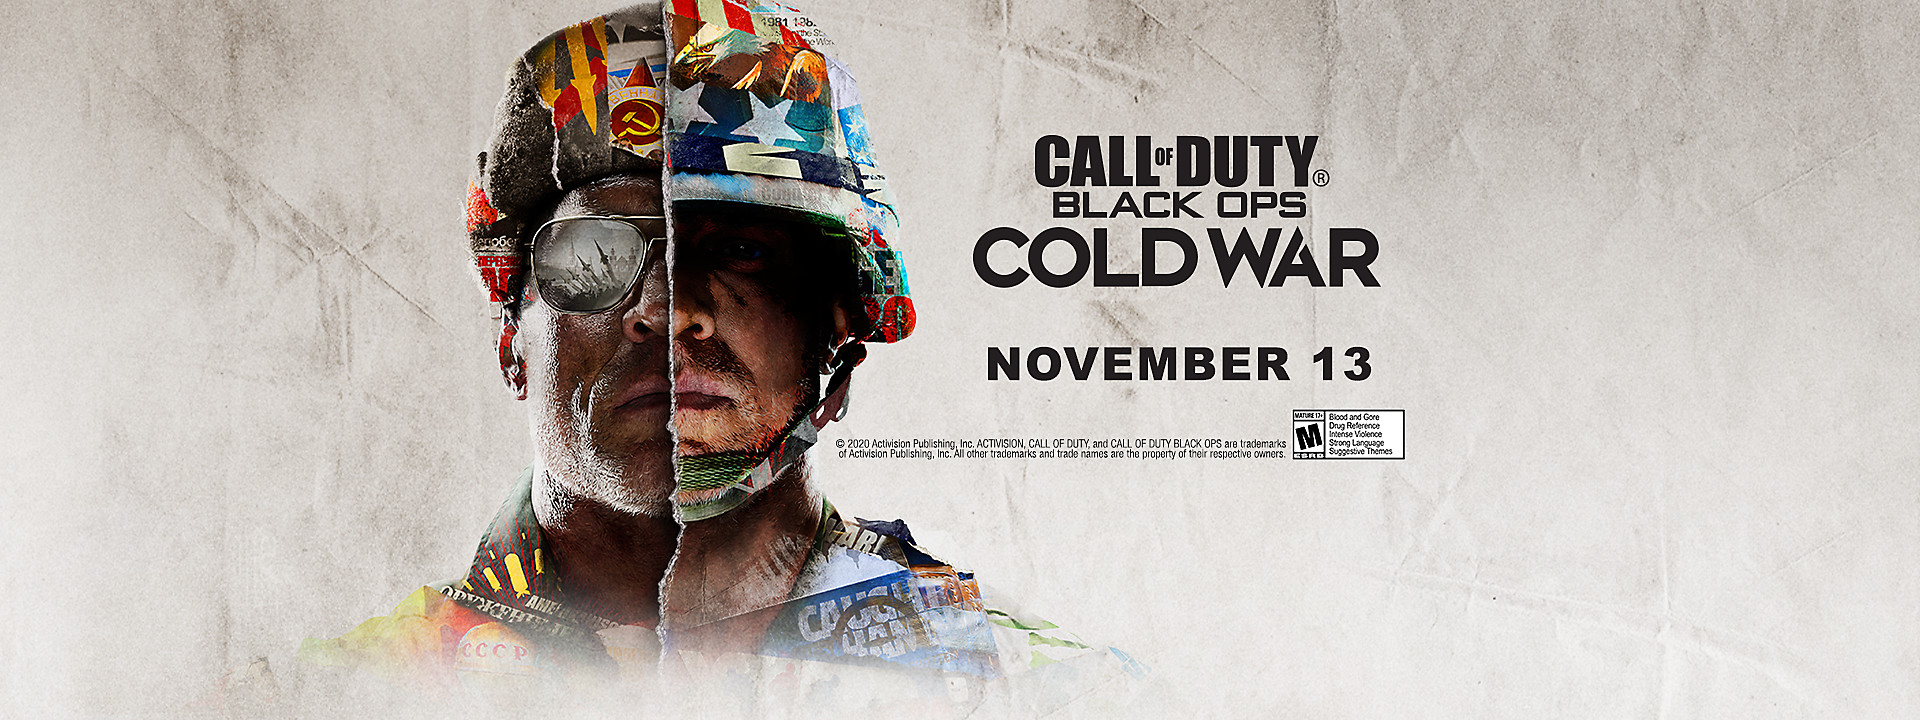 Call of Duty: Black Ops Cold War - Multiplayer Trailer Now Available